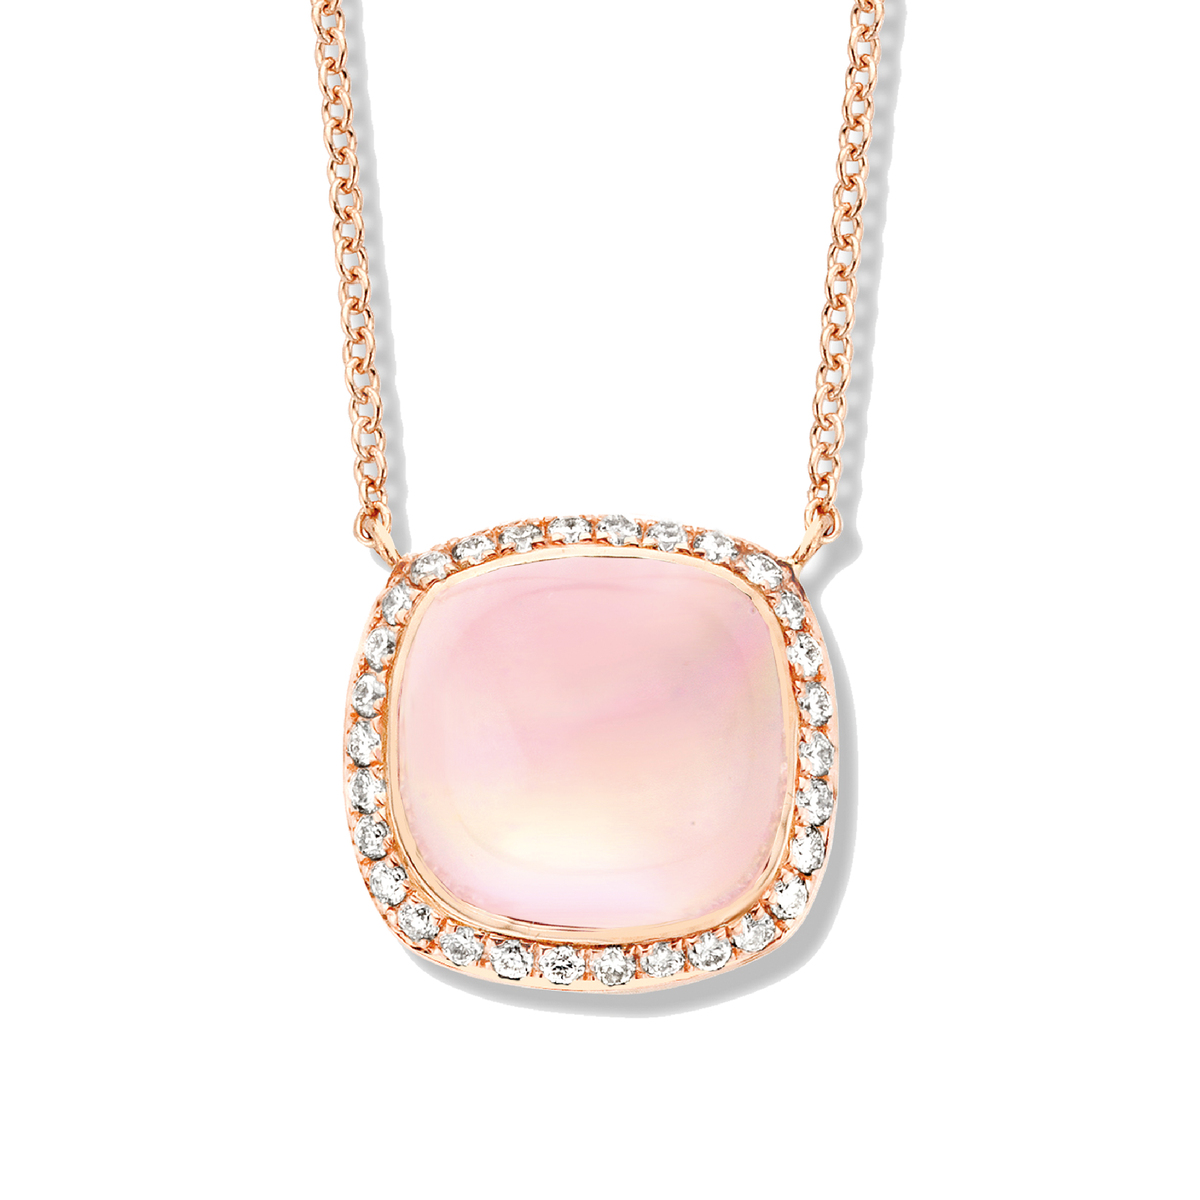 amiata necklace in rose gold